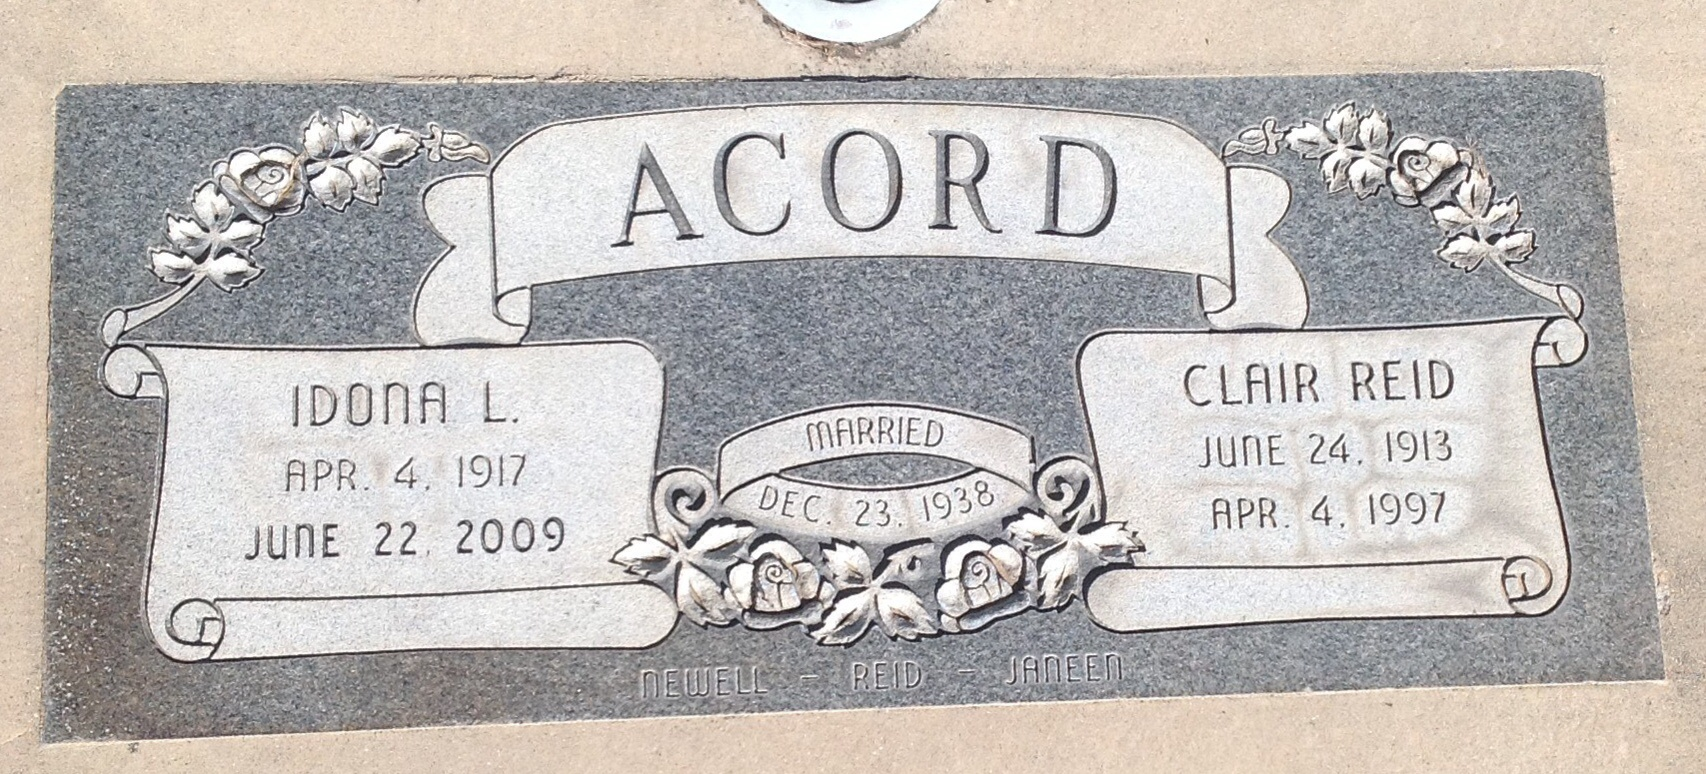 Clair Reed Acord